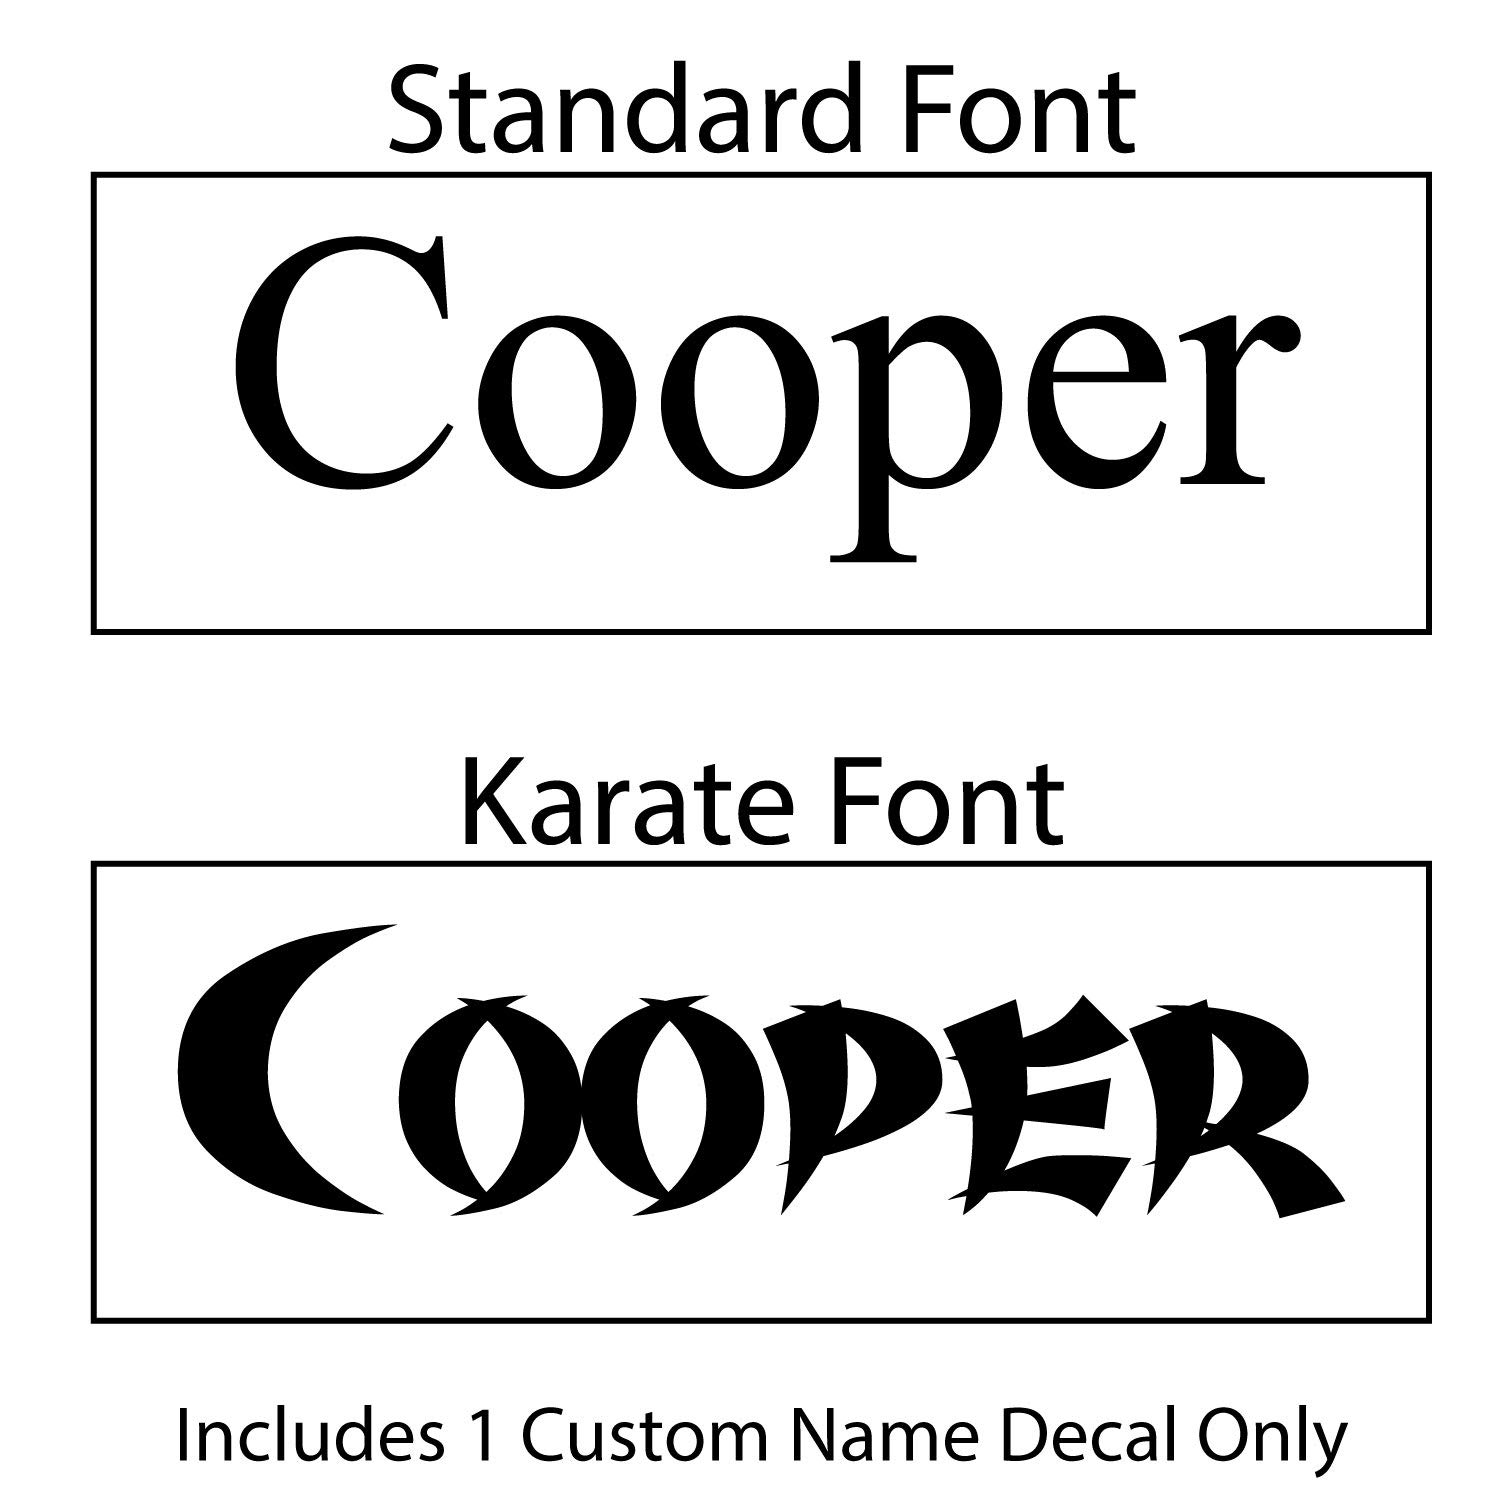 Personalized Custom Name Decal /& Accents for Martial Arts Belt Holders